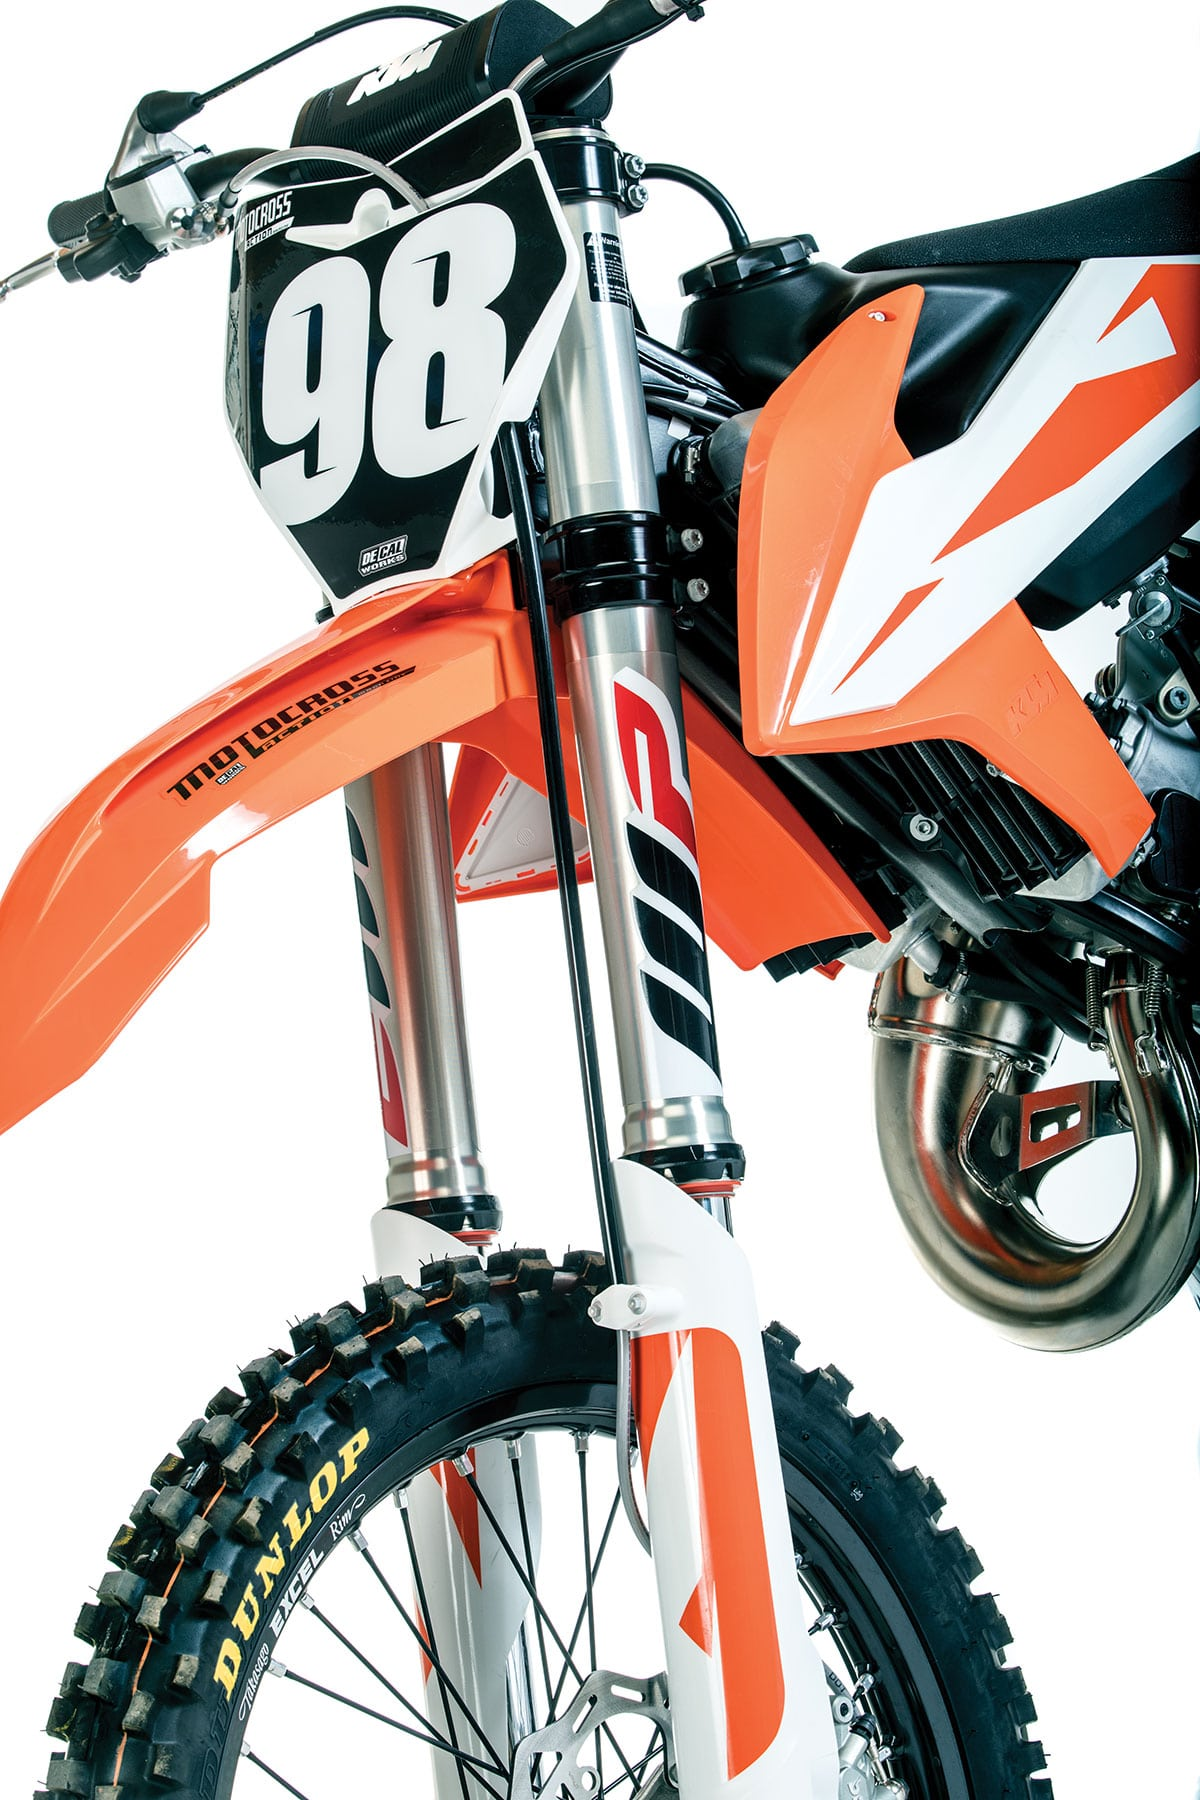 MXA RACE TEST: THE REAL TEST OF THE 2019 KTM 125SX TWO-STROKE